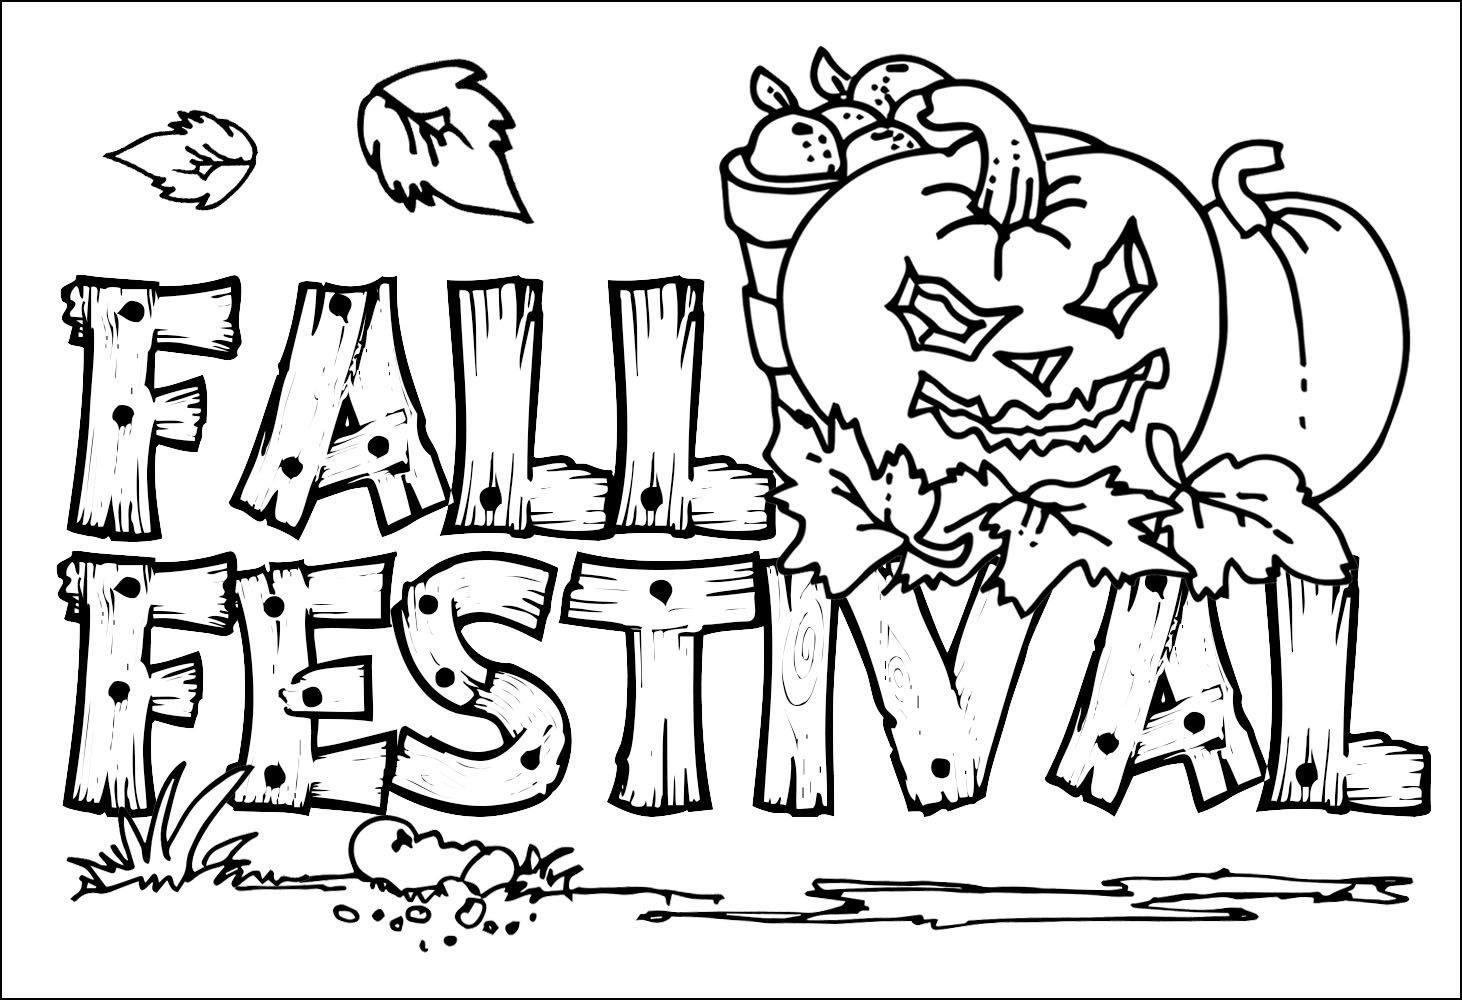 Revisited Free Printable Coloring Pages Fall Season Harvest Bltidm